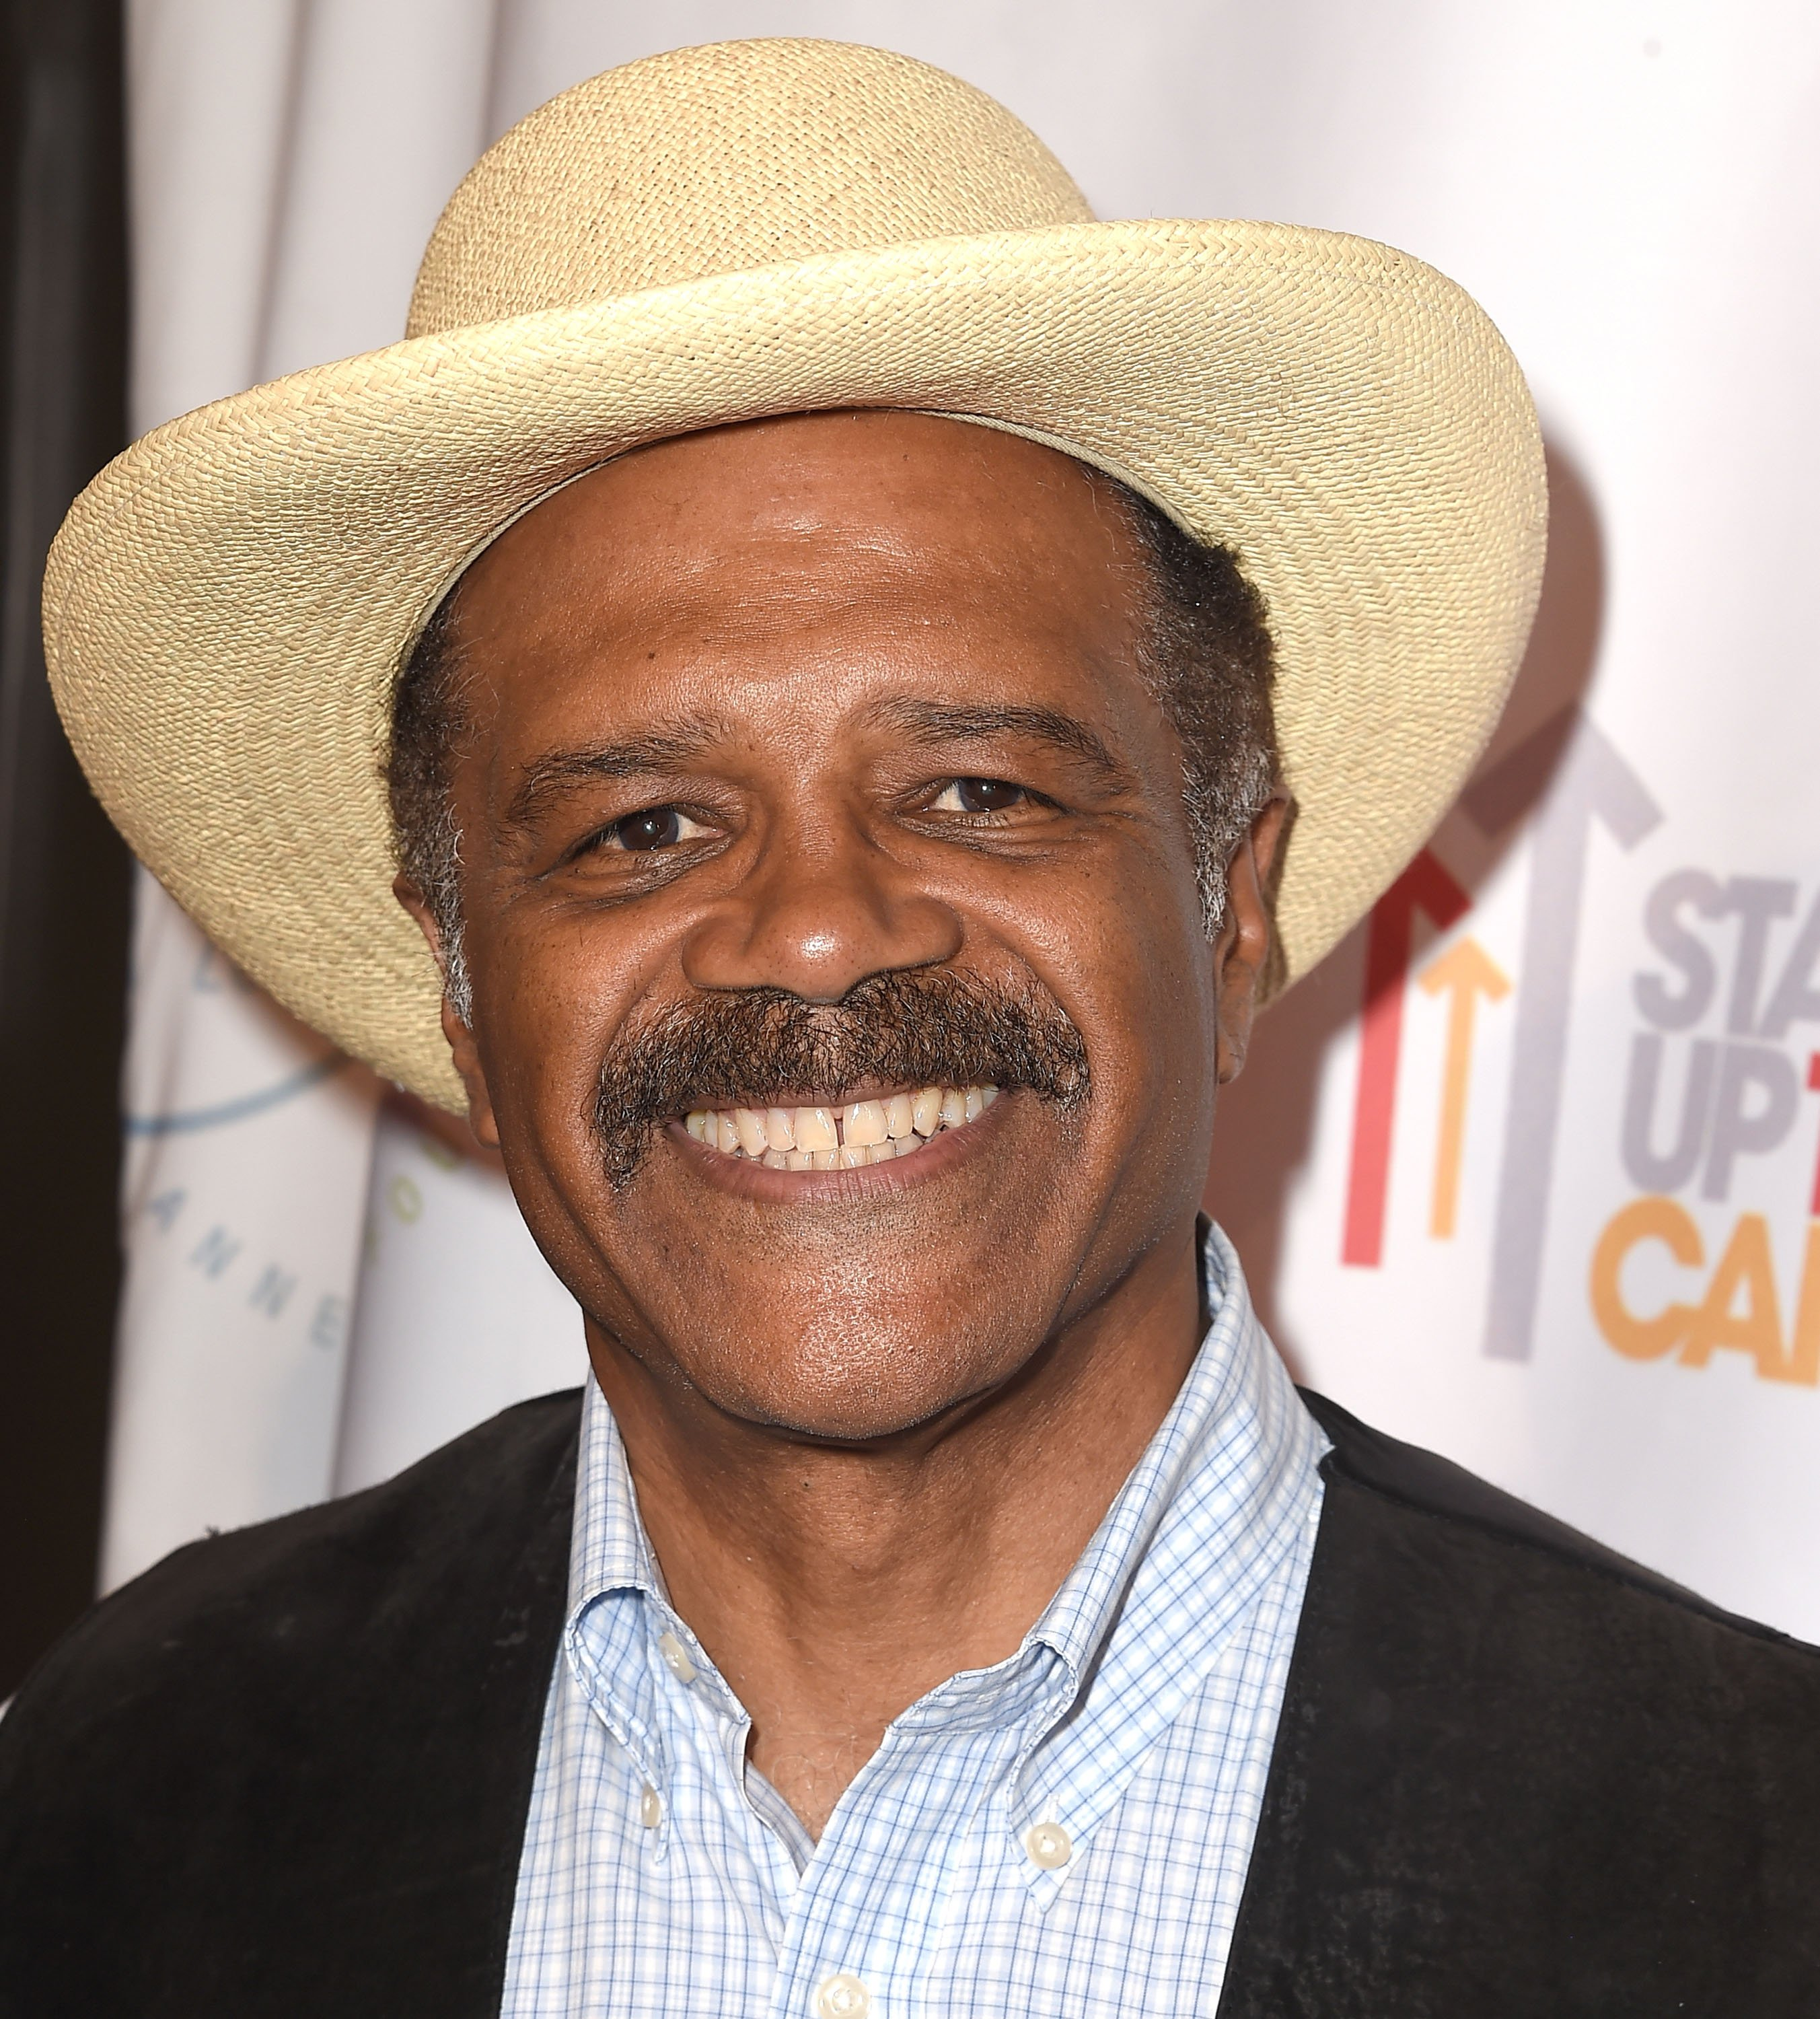 Ted Lange arrives at the Farrah Fawcett Foundation Presents 1st Annual Tex-Mex Fiesta at Wallis Annenberg Center for the Performing Arts on September 9, 2015 | Photo: Getty Images